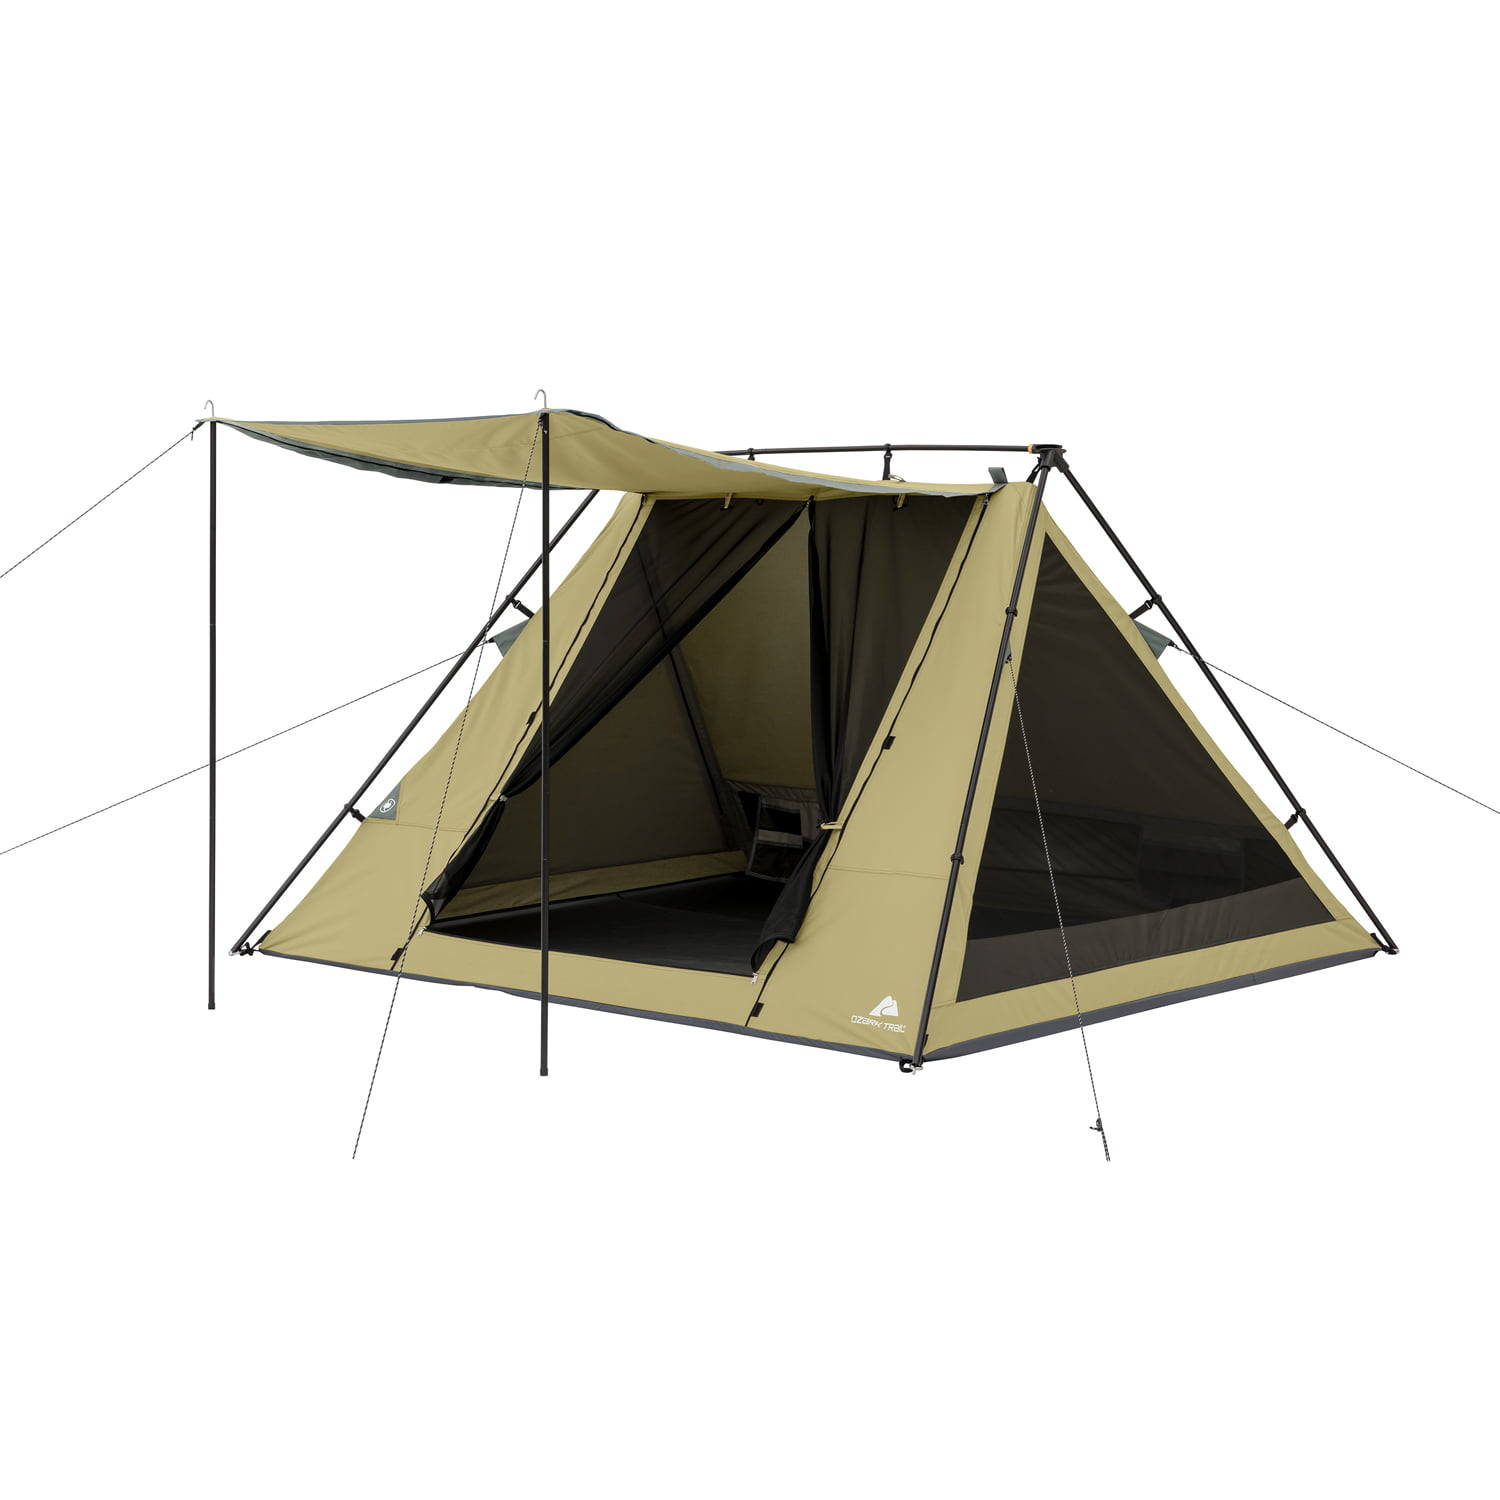 Ozark Trail 4 Person A-Frame Tent with Awning by Generic